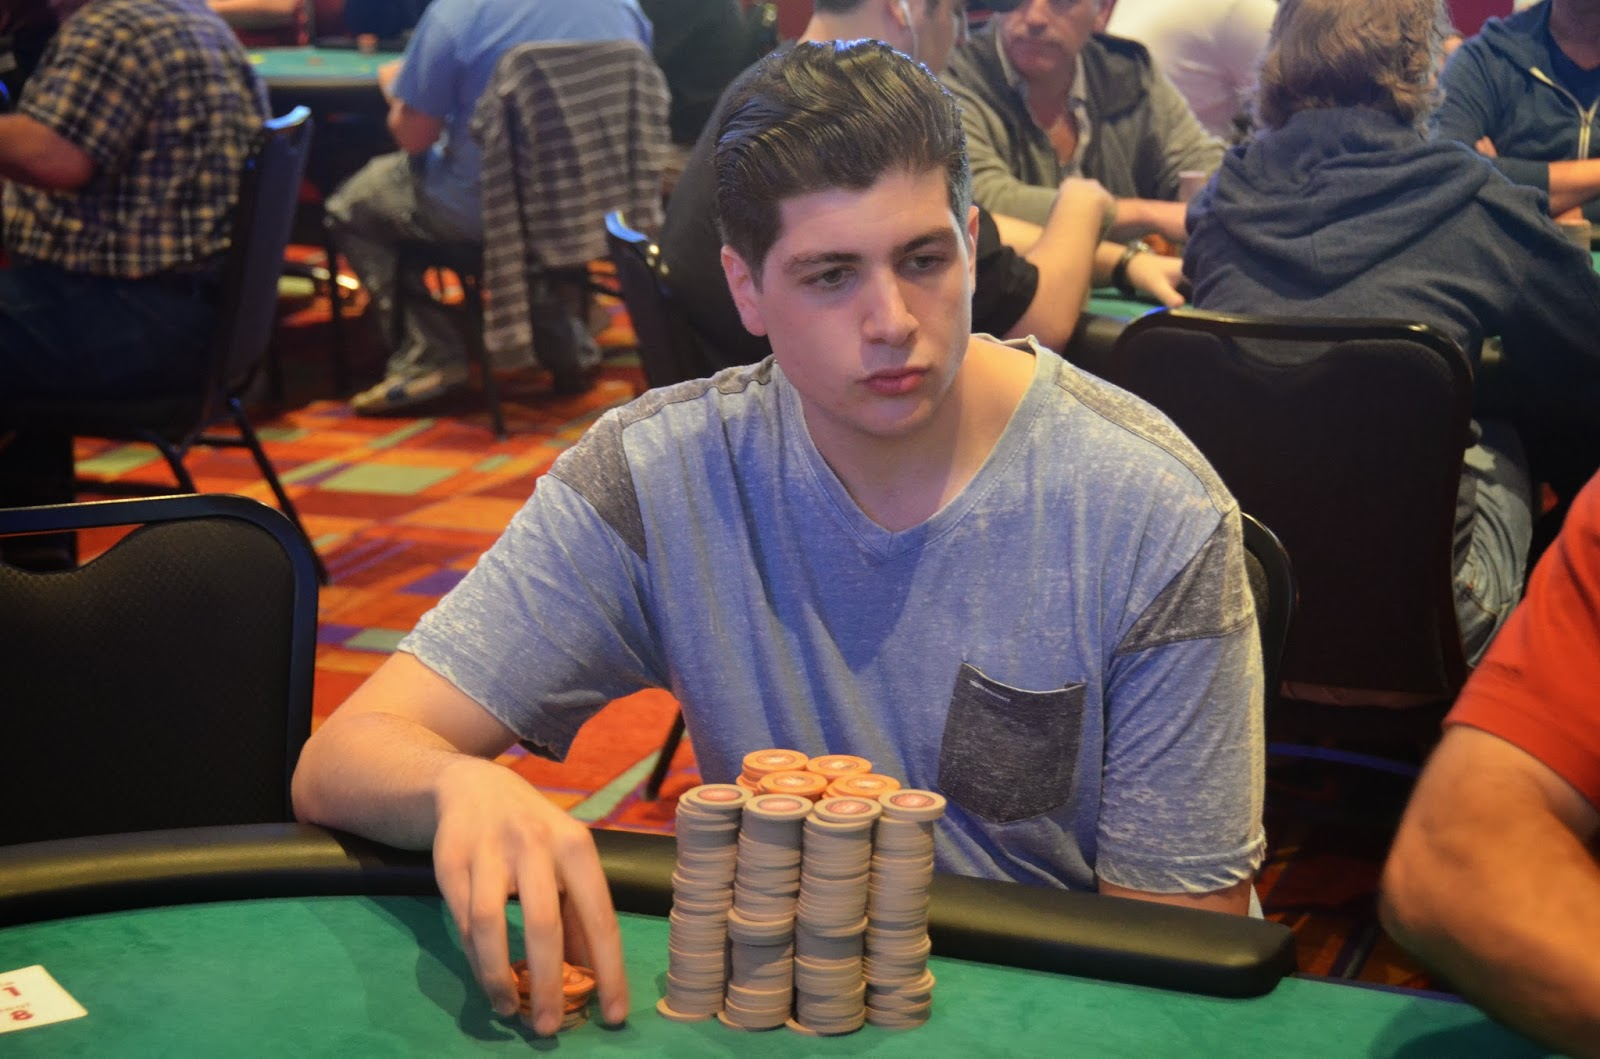 Parx big stax iv big stax 300 day 2 rocco leads the way for Parx poker room live game report